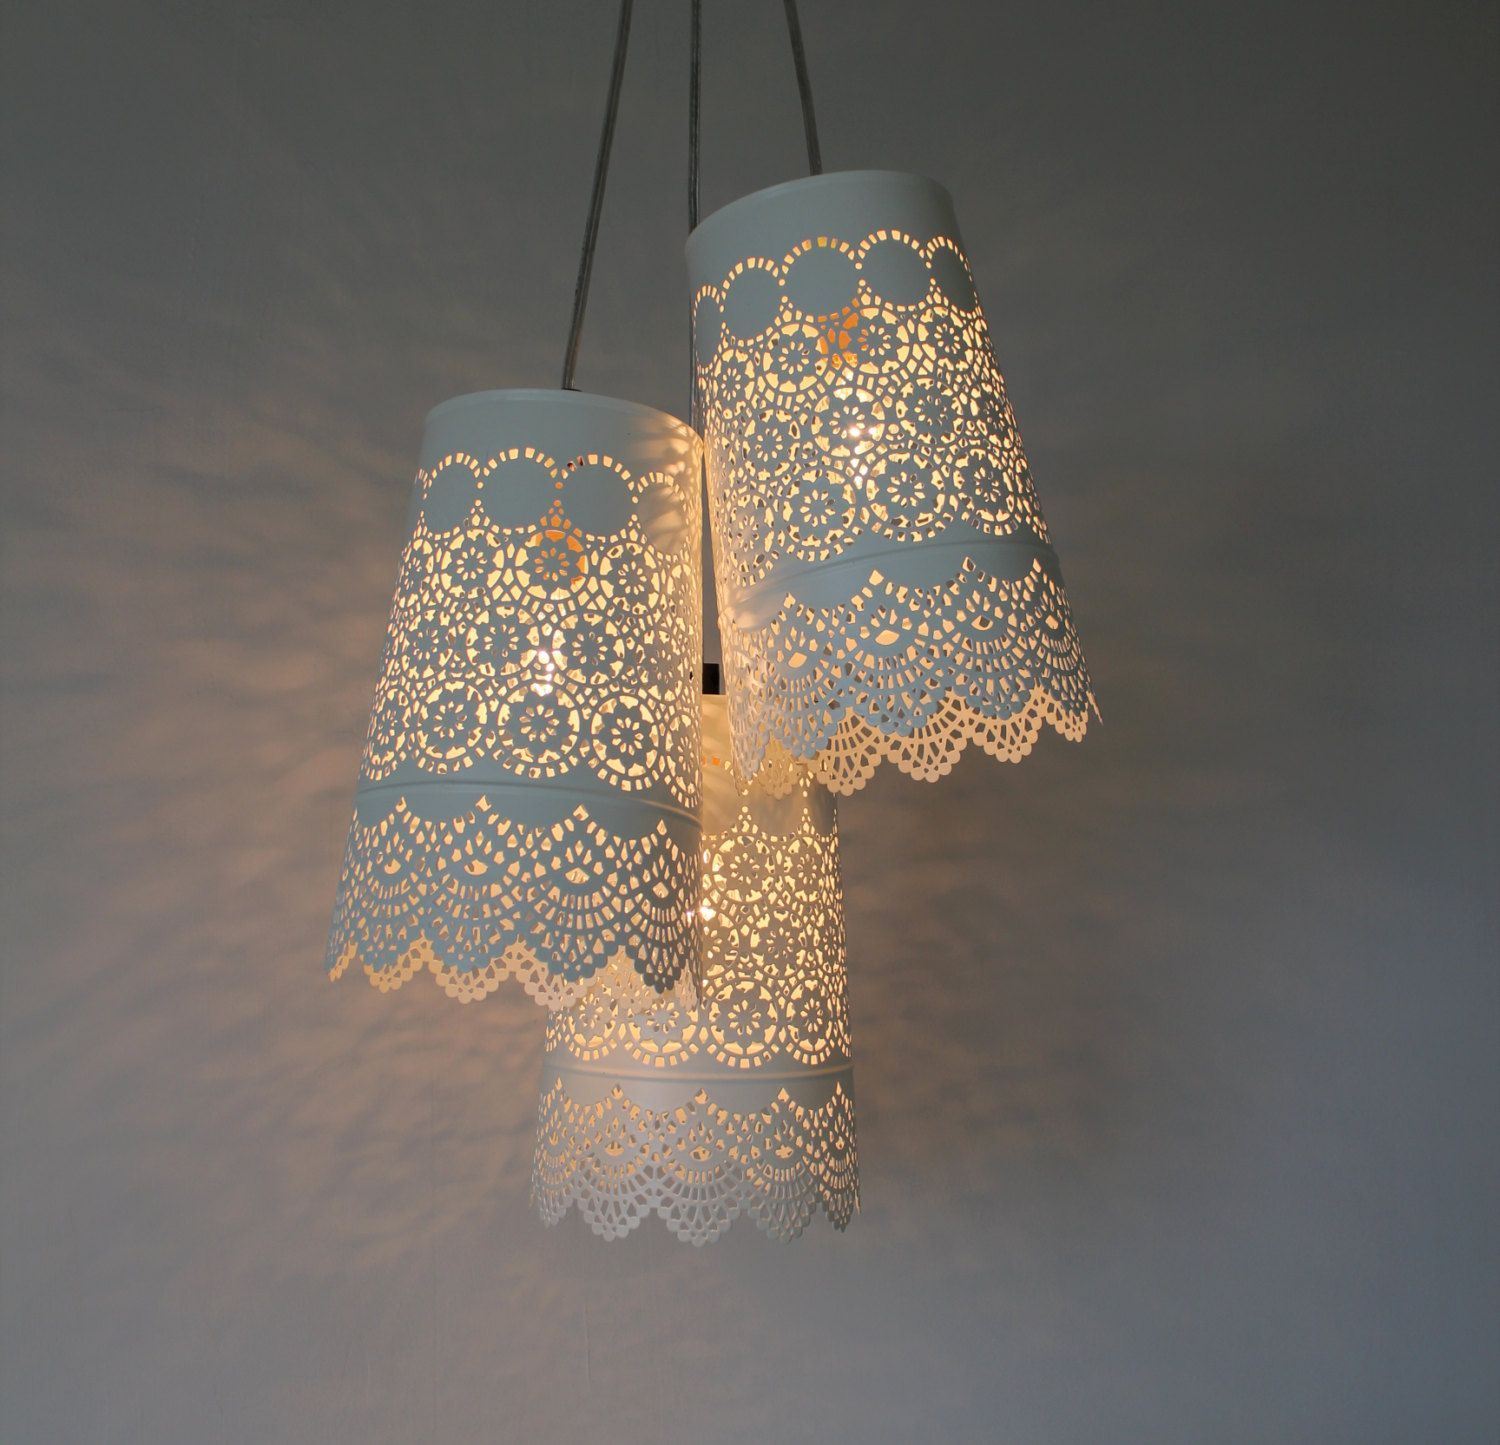 Small Lamp Shades For Chandeliers Small Lamp Shades Metal Lamp Shade Mini Lamp